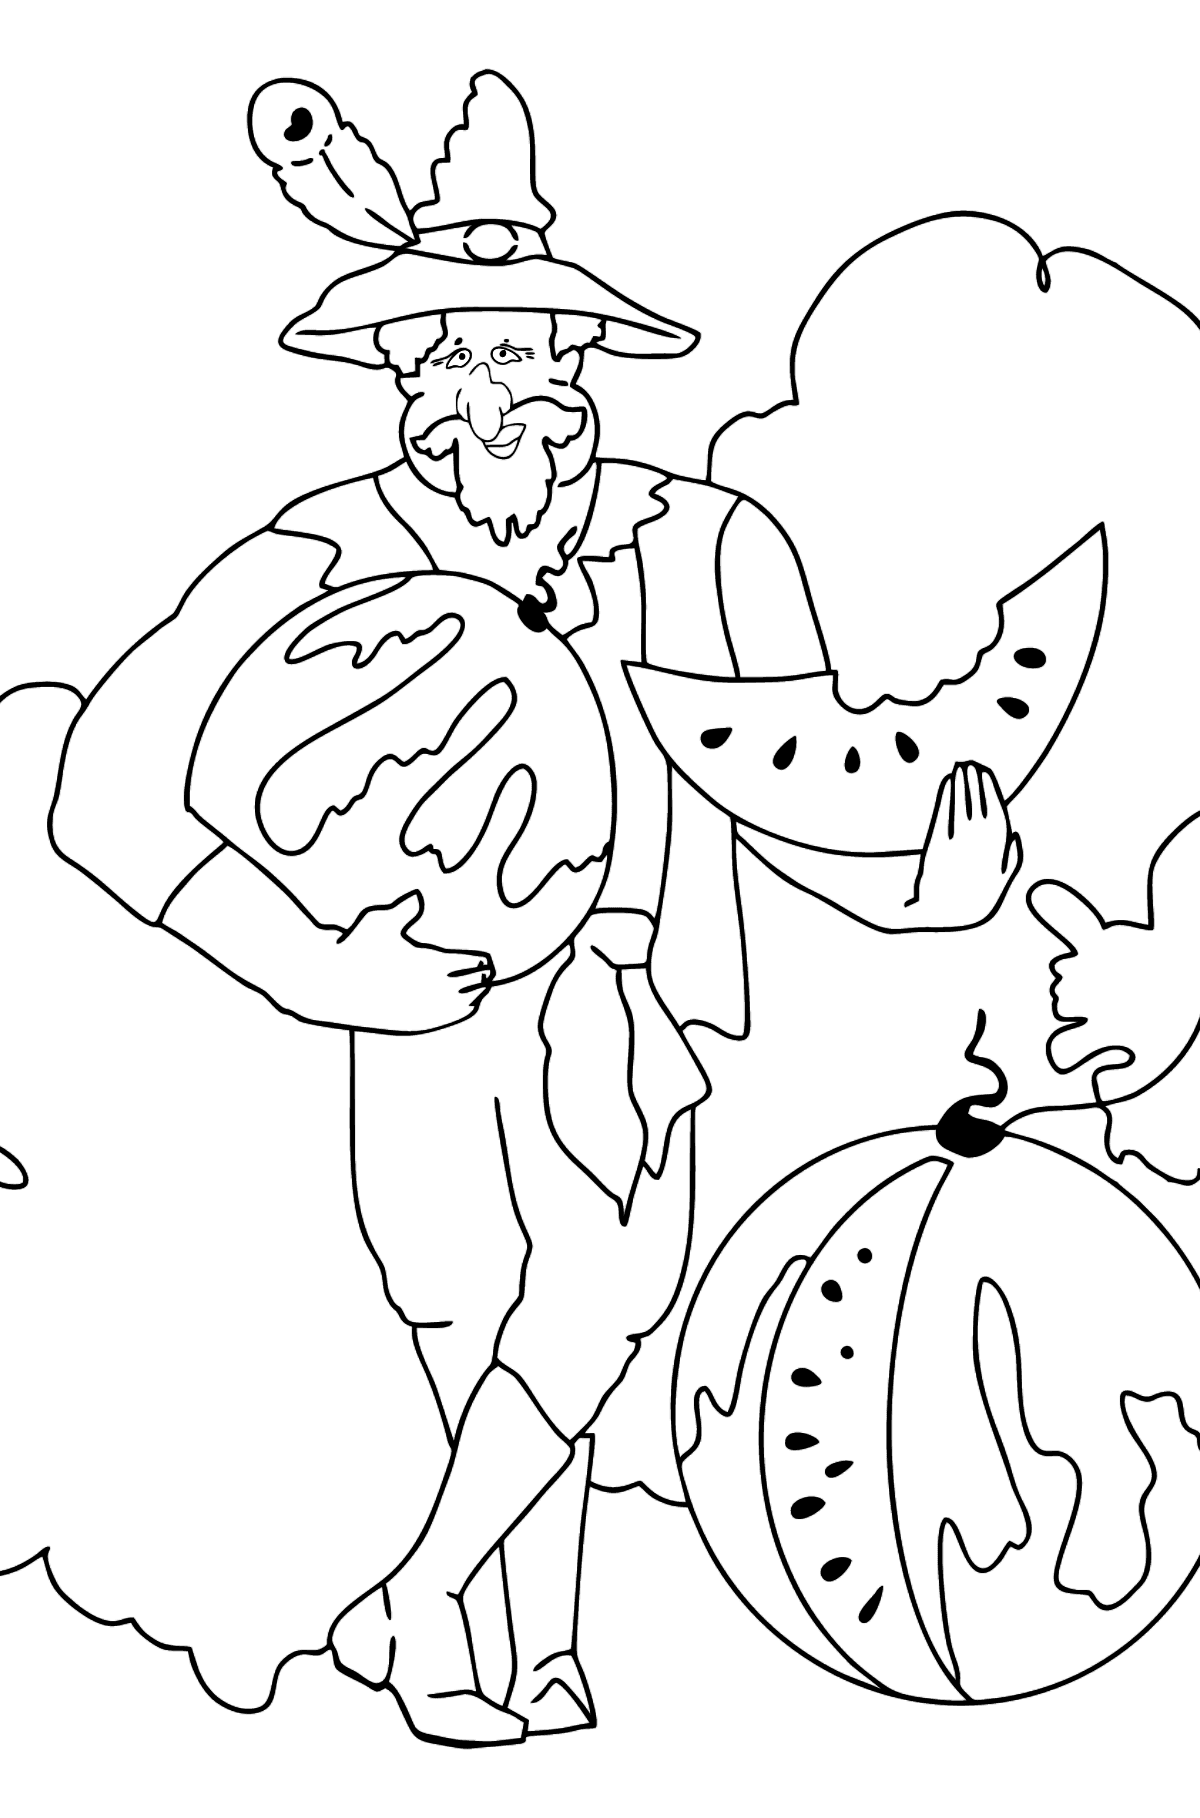 Coloring Page - A Pirate with a Watermelon - Coloring Pages for Kids